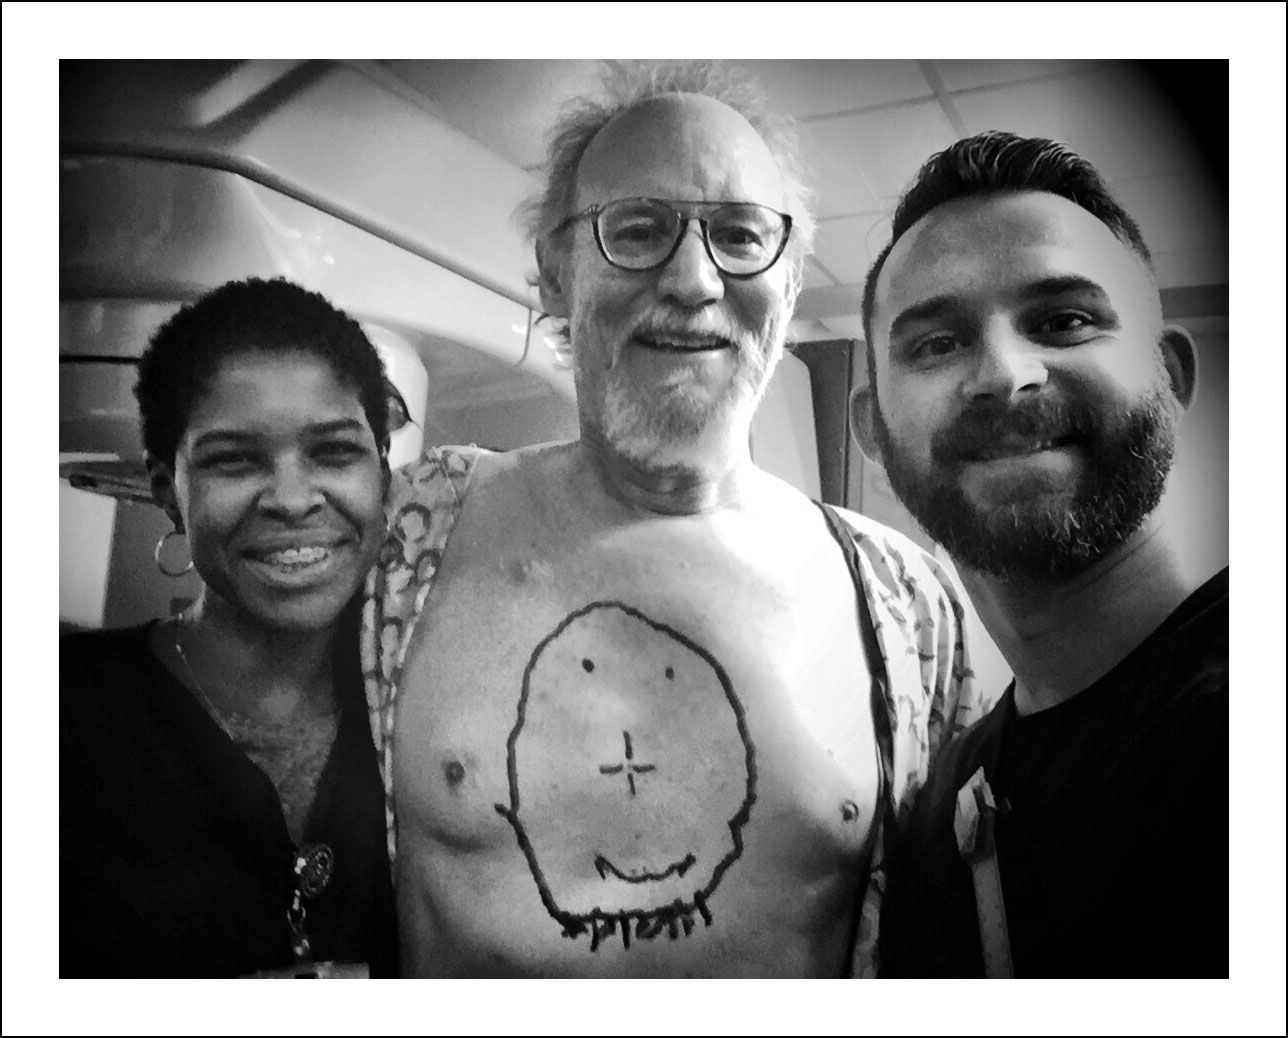 1/26/18 — Last of 15 radiology appointments today. I surprised Ramona and Rob, the super zapping duo, with a big smile. Courtney Perry suggested I draw a smiley face when she saw a previous post showing the alignment tattoos. The little dot in the center of the nose is permanent. The rest I did this morning. I know it's pretty bad because my great artist son wouldn't do it for me.